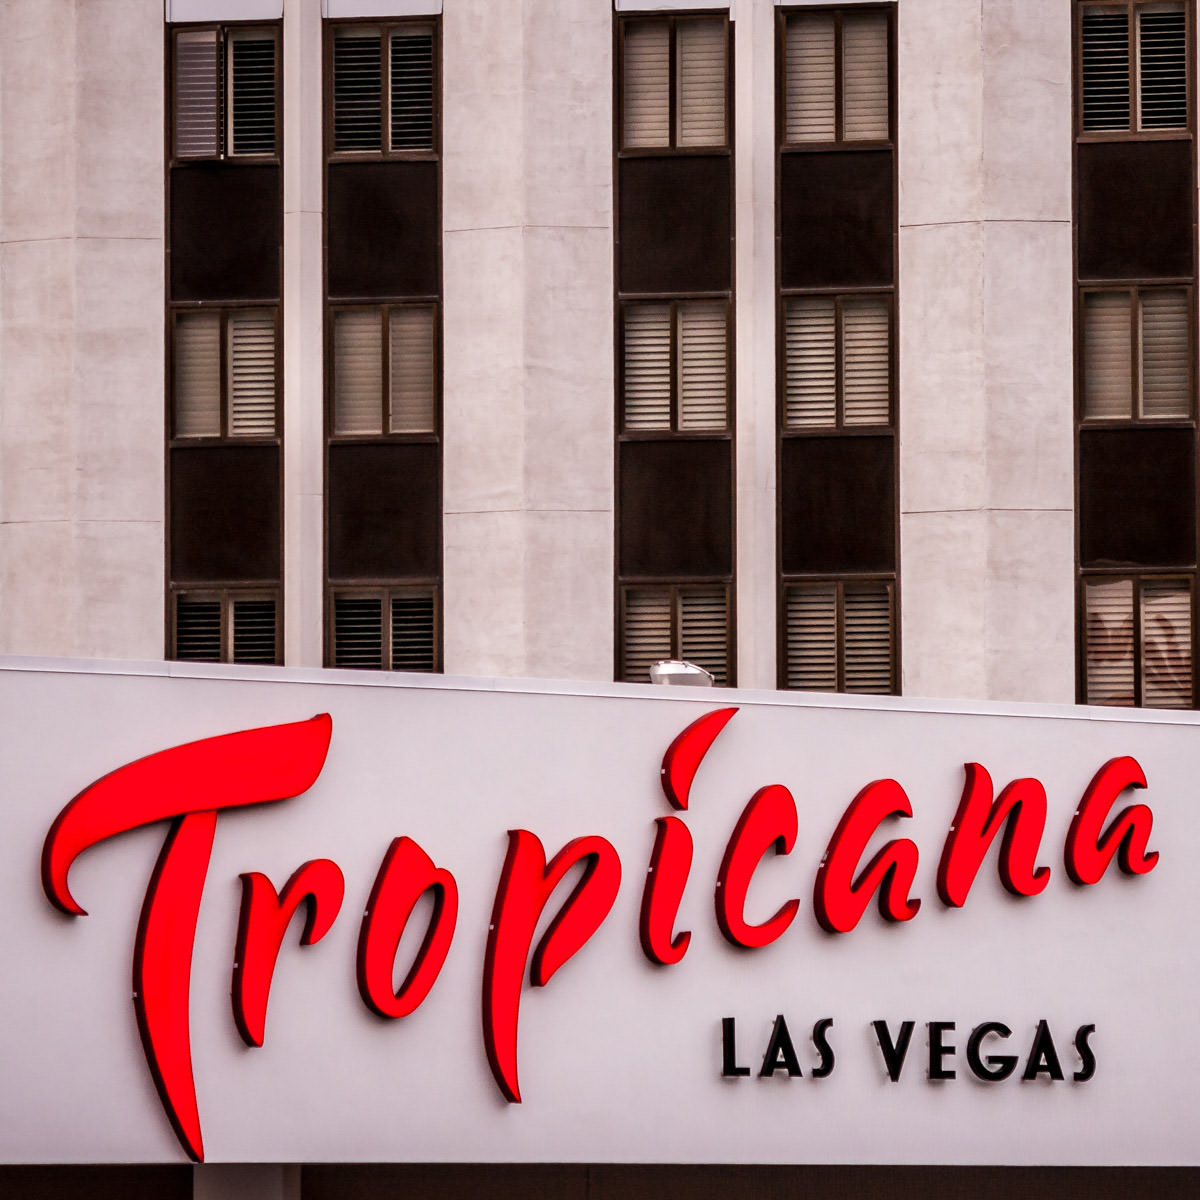 One of the signs at the Tropicana, Las Vegas.